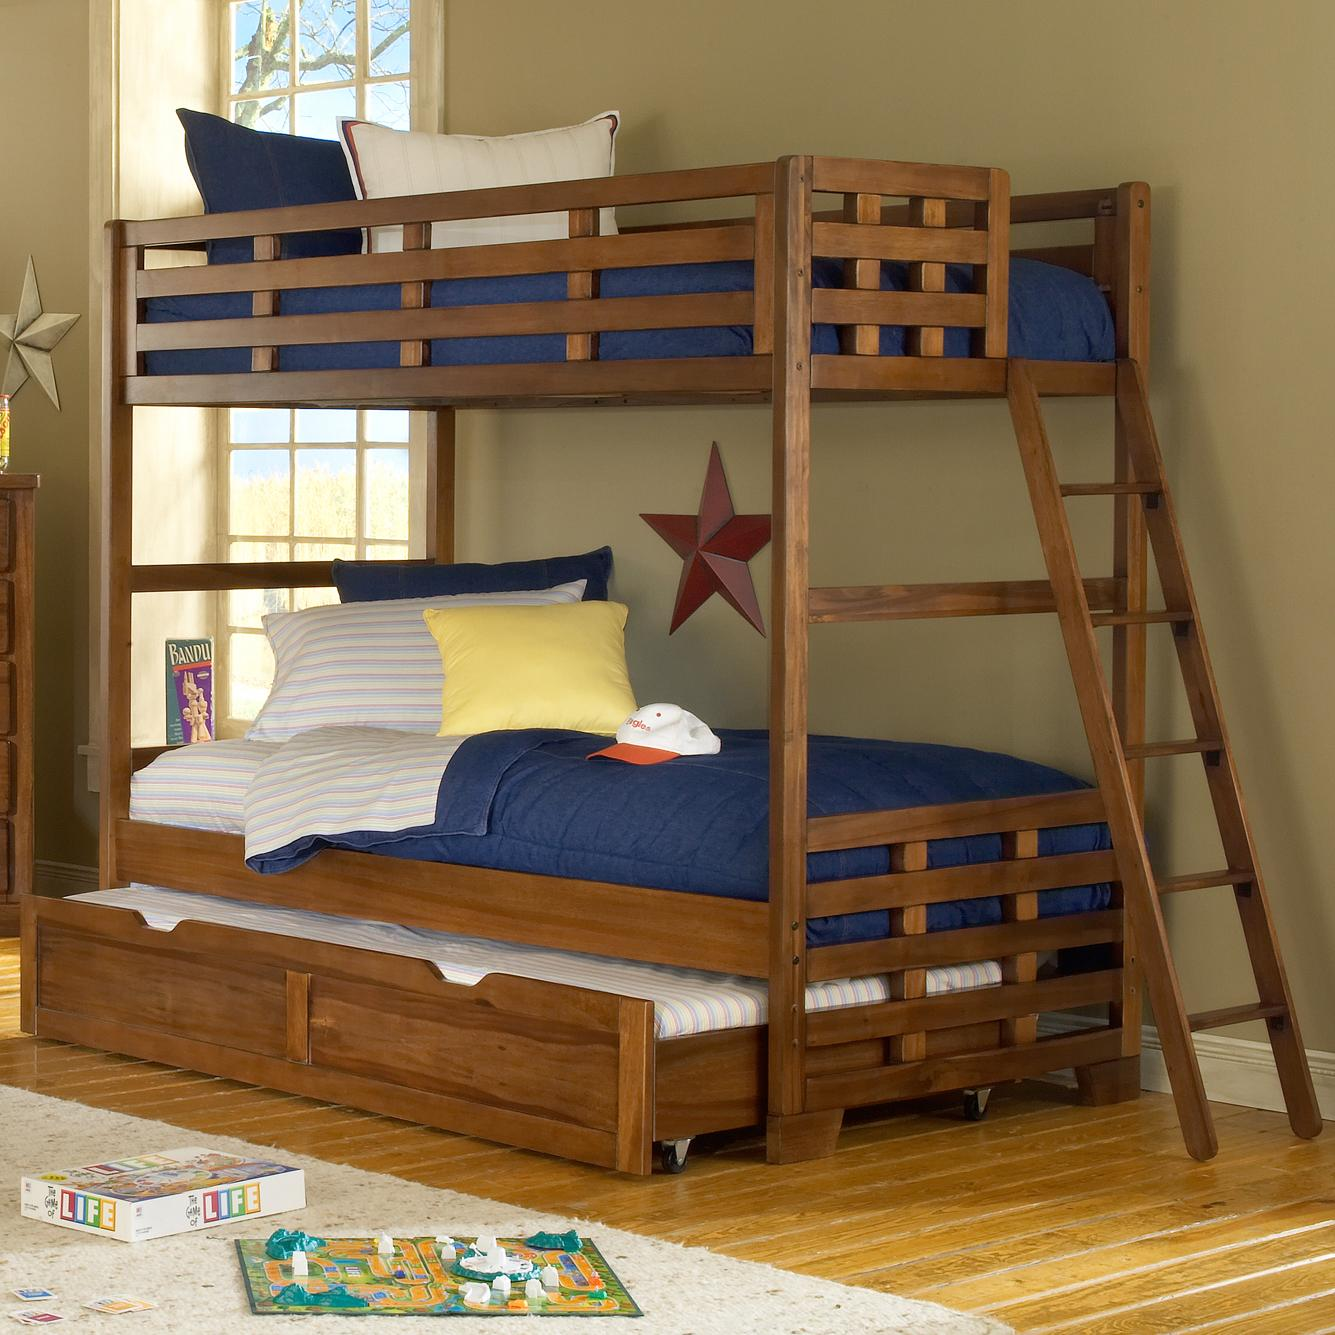 Loft Beds with Storage and Ladder